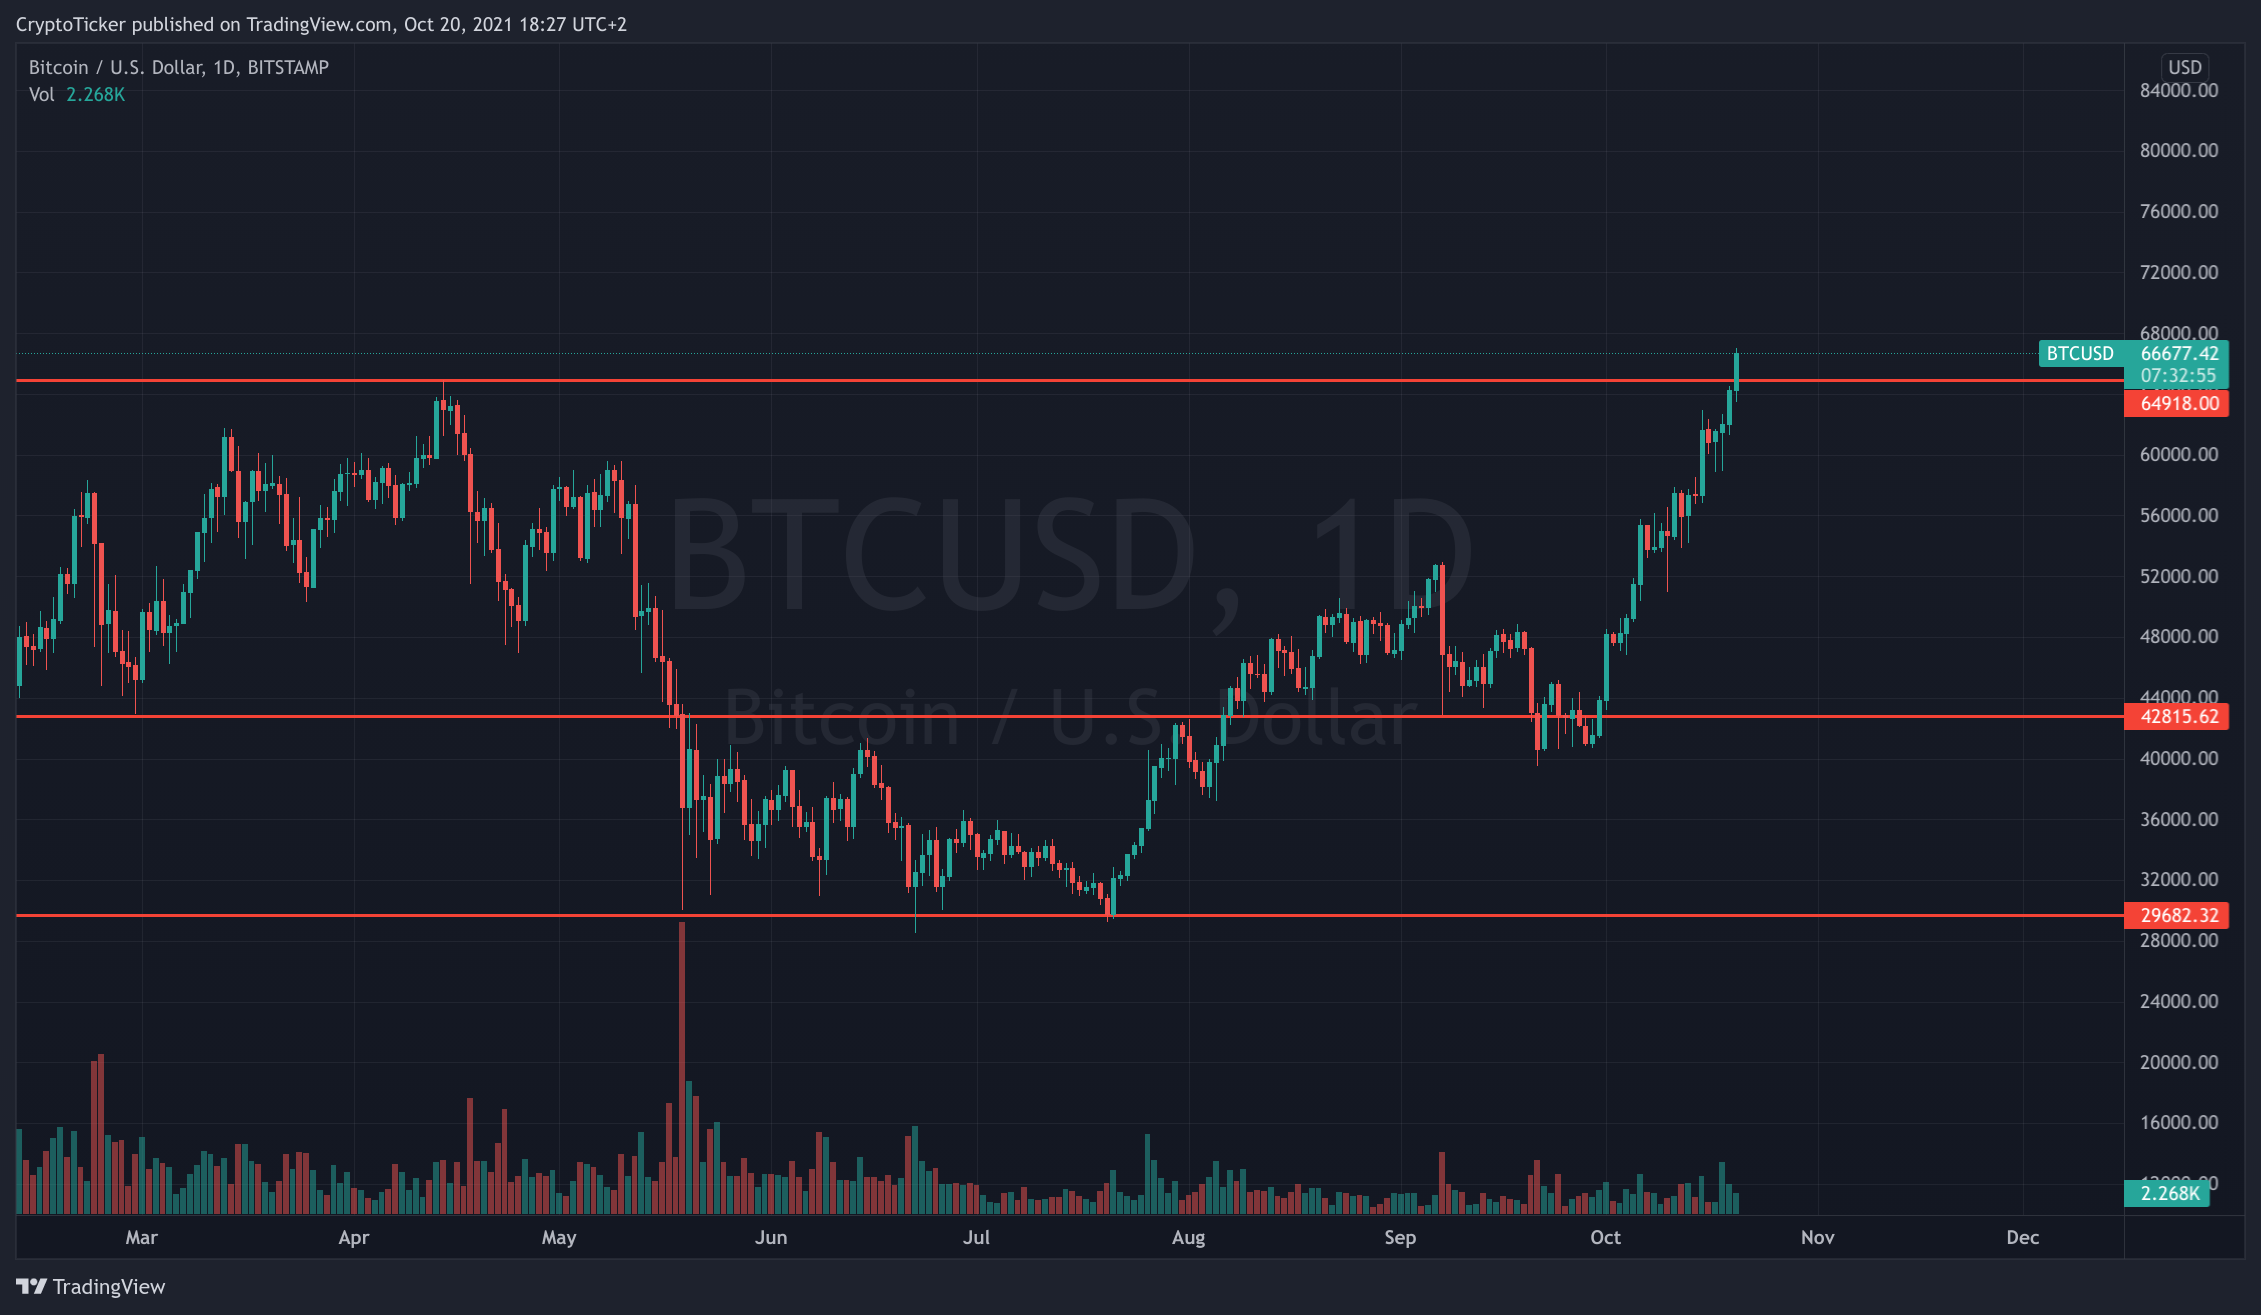 BTC/USD 1-day chart showing BTC crossing ATH